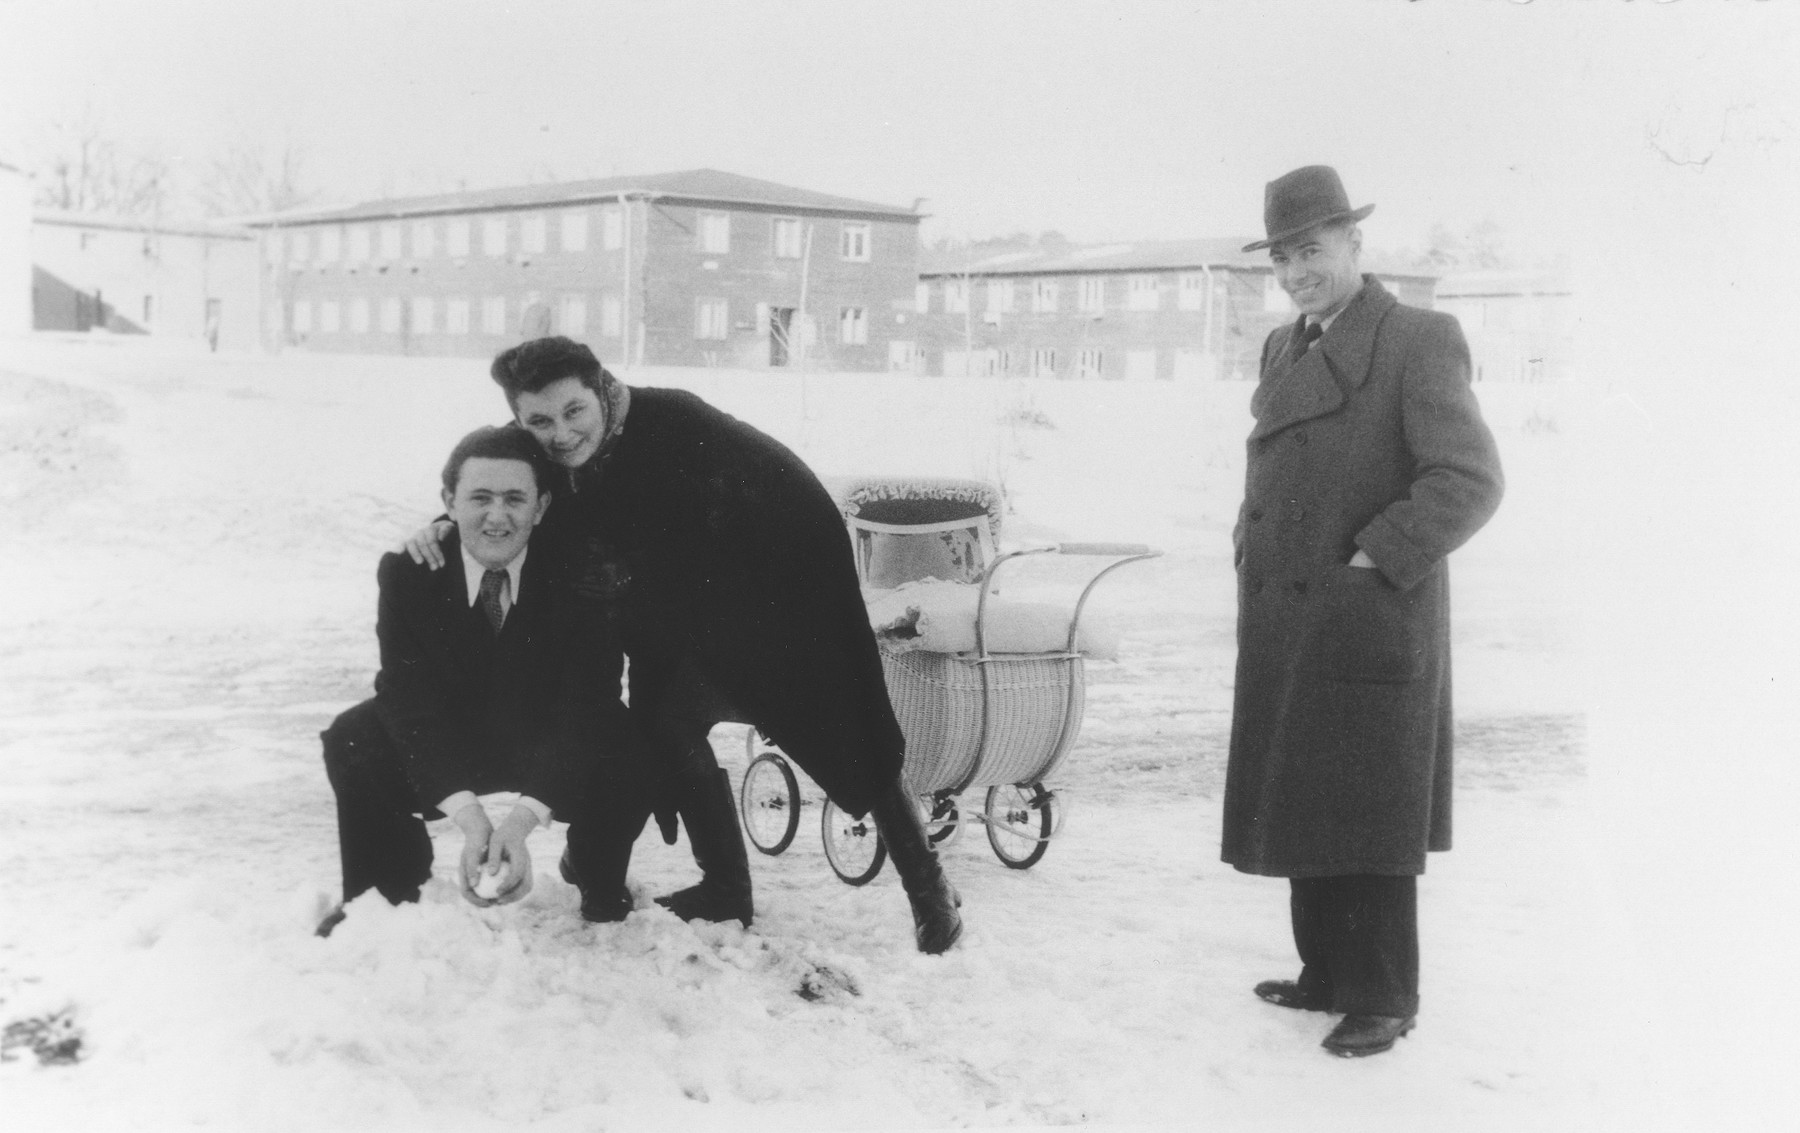 Yeshayahu Zycer plays in the snow with his teachers, Margot and Leonhard Natkowitz, at the Schlachtensee displaced persons camp.